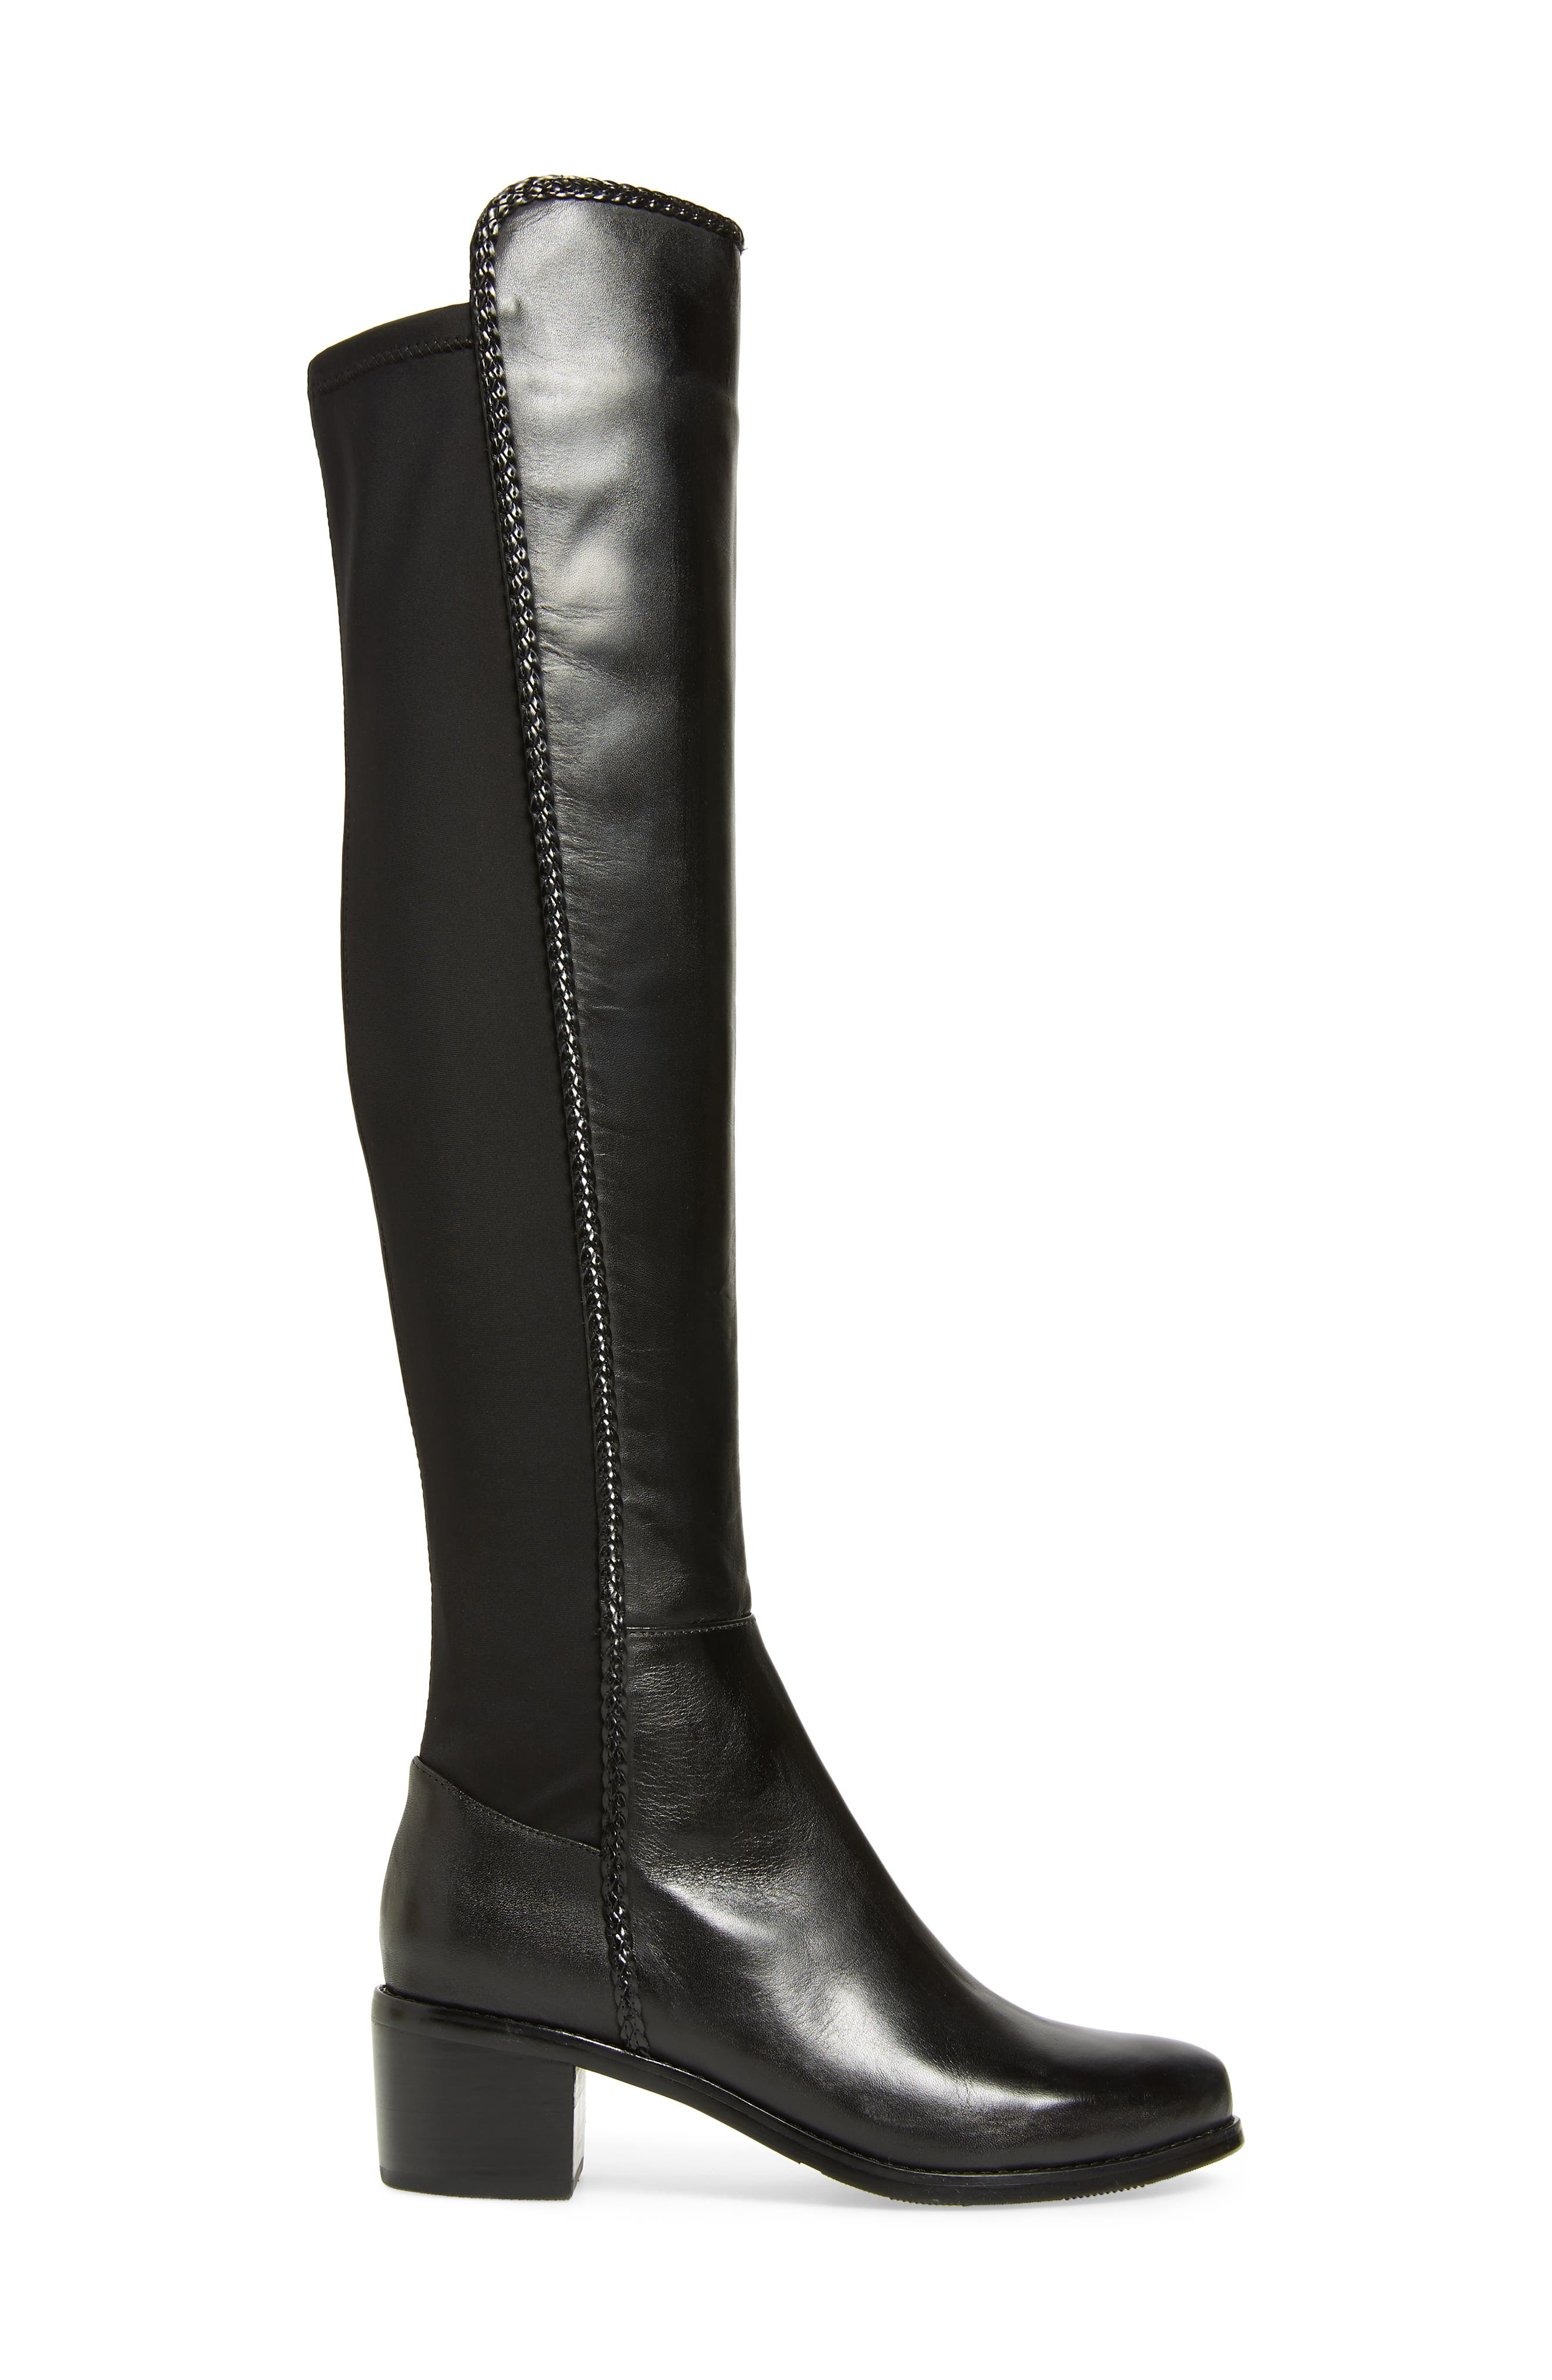 Florence Waterproof Over the Knee Boot,                             Alternate thumbnail 3, color,                             BLACK LEATHER